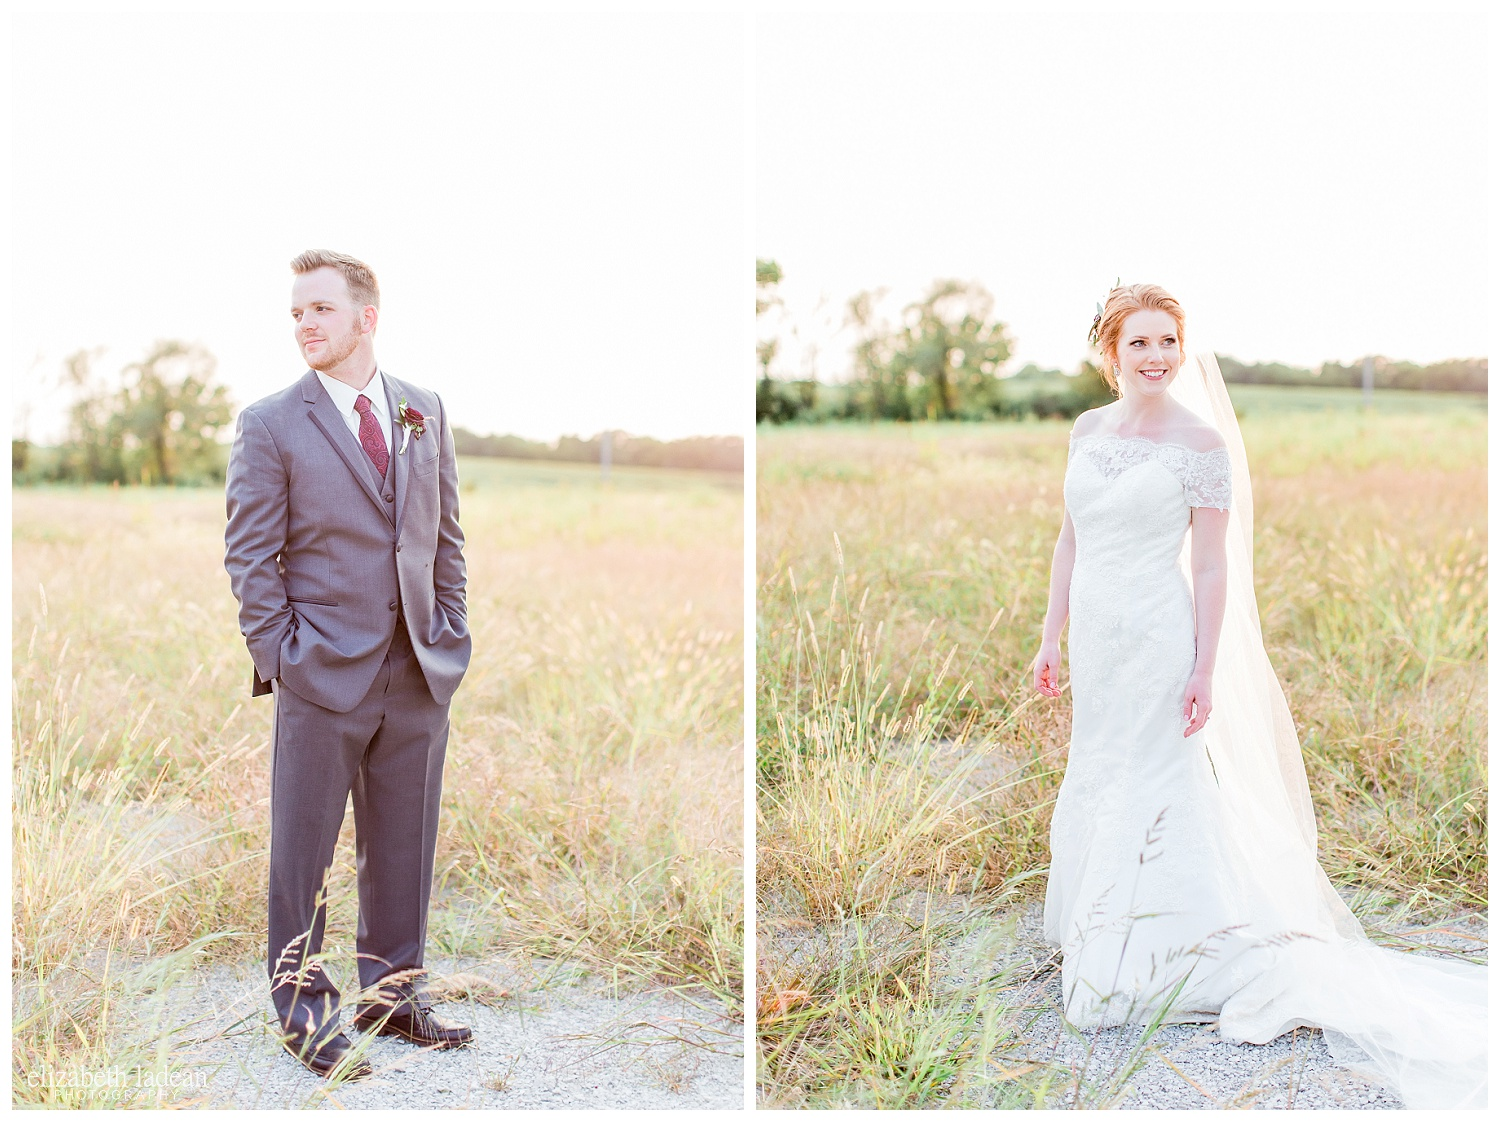 Burgundy-and-Gold-Wedding-Kansas-City-The-Legacy-at-Green-Hills-M+T0902-Elizabeth-Ladean-Photography-photo-_2317.jpg